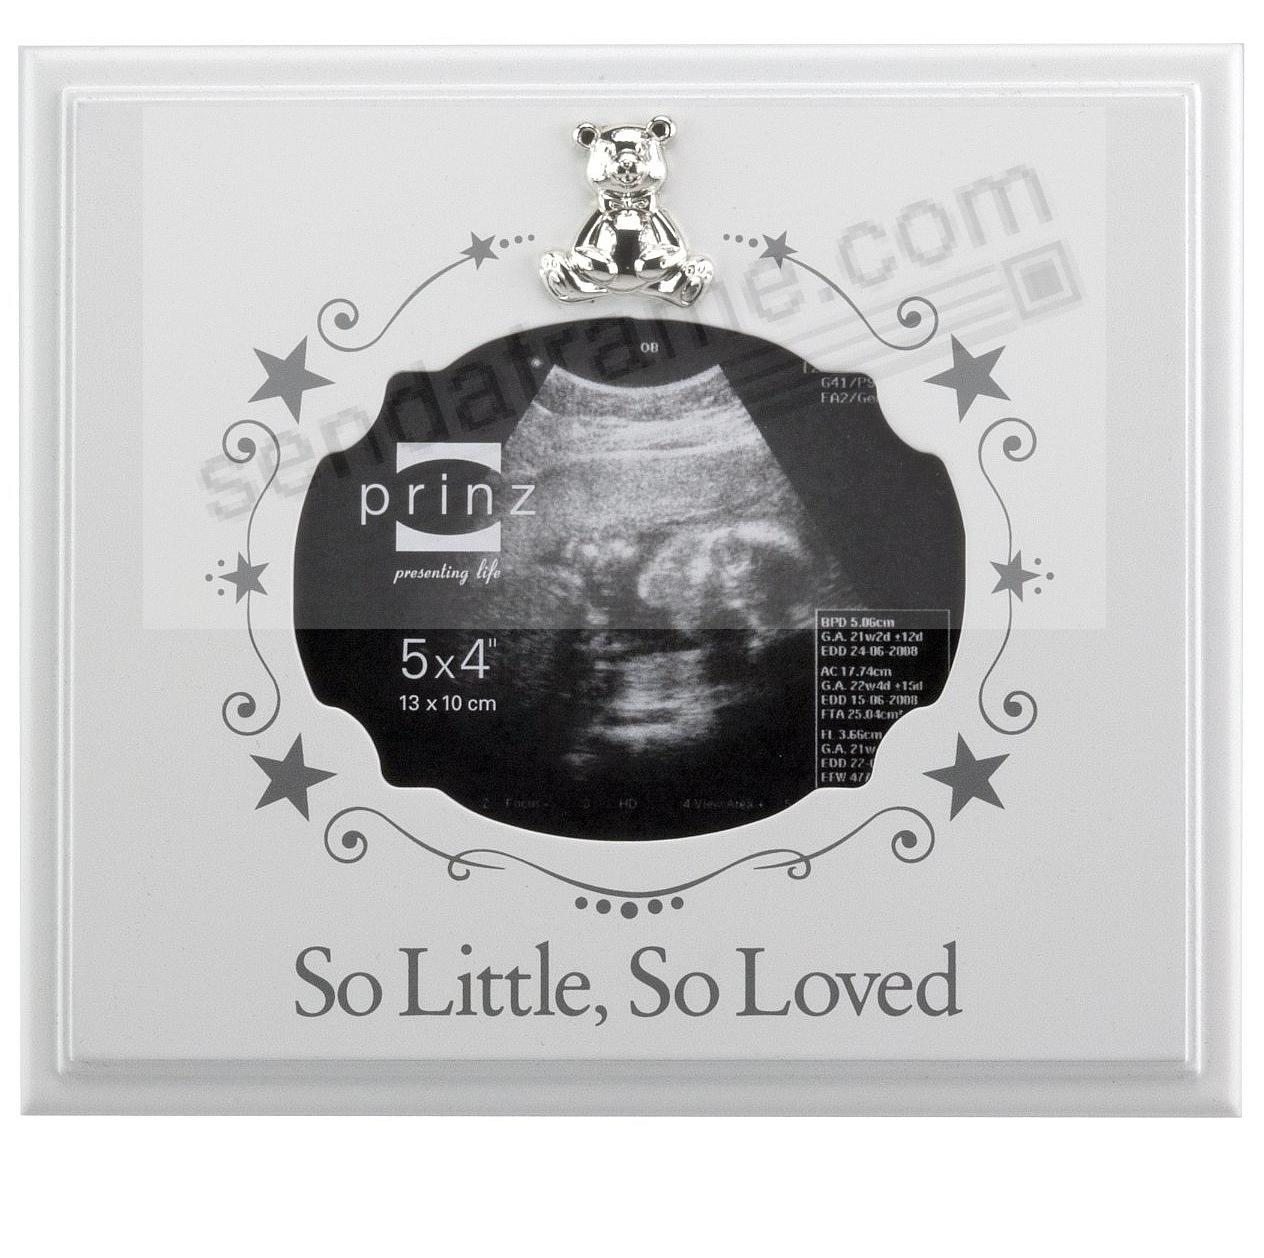 so little so loved silver teddy bear sonogram frame by prinzreg